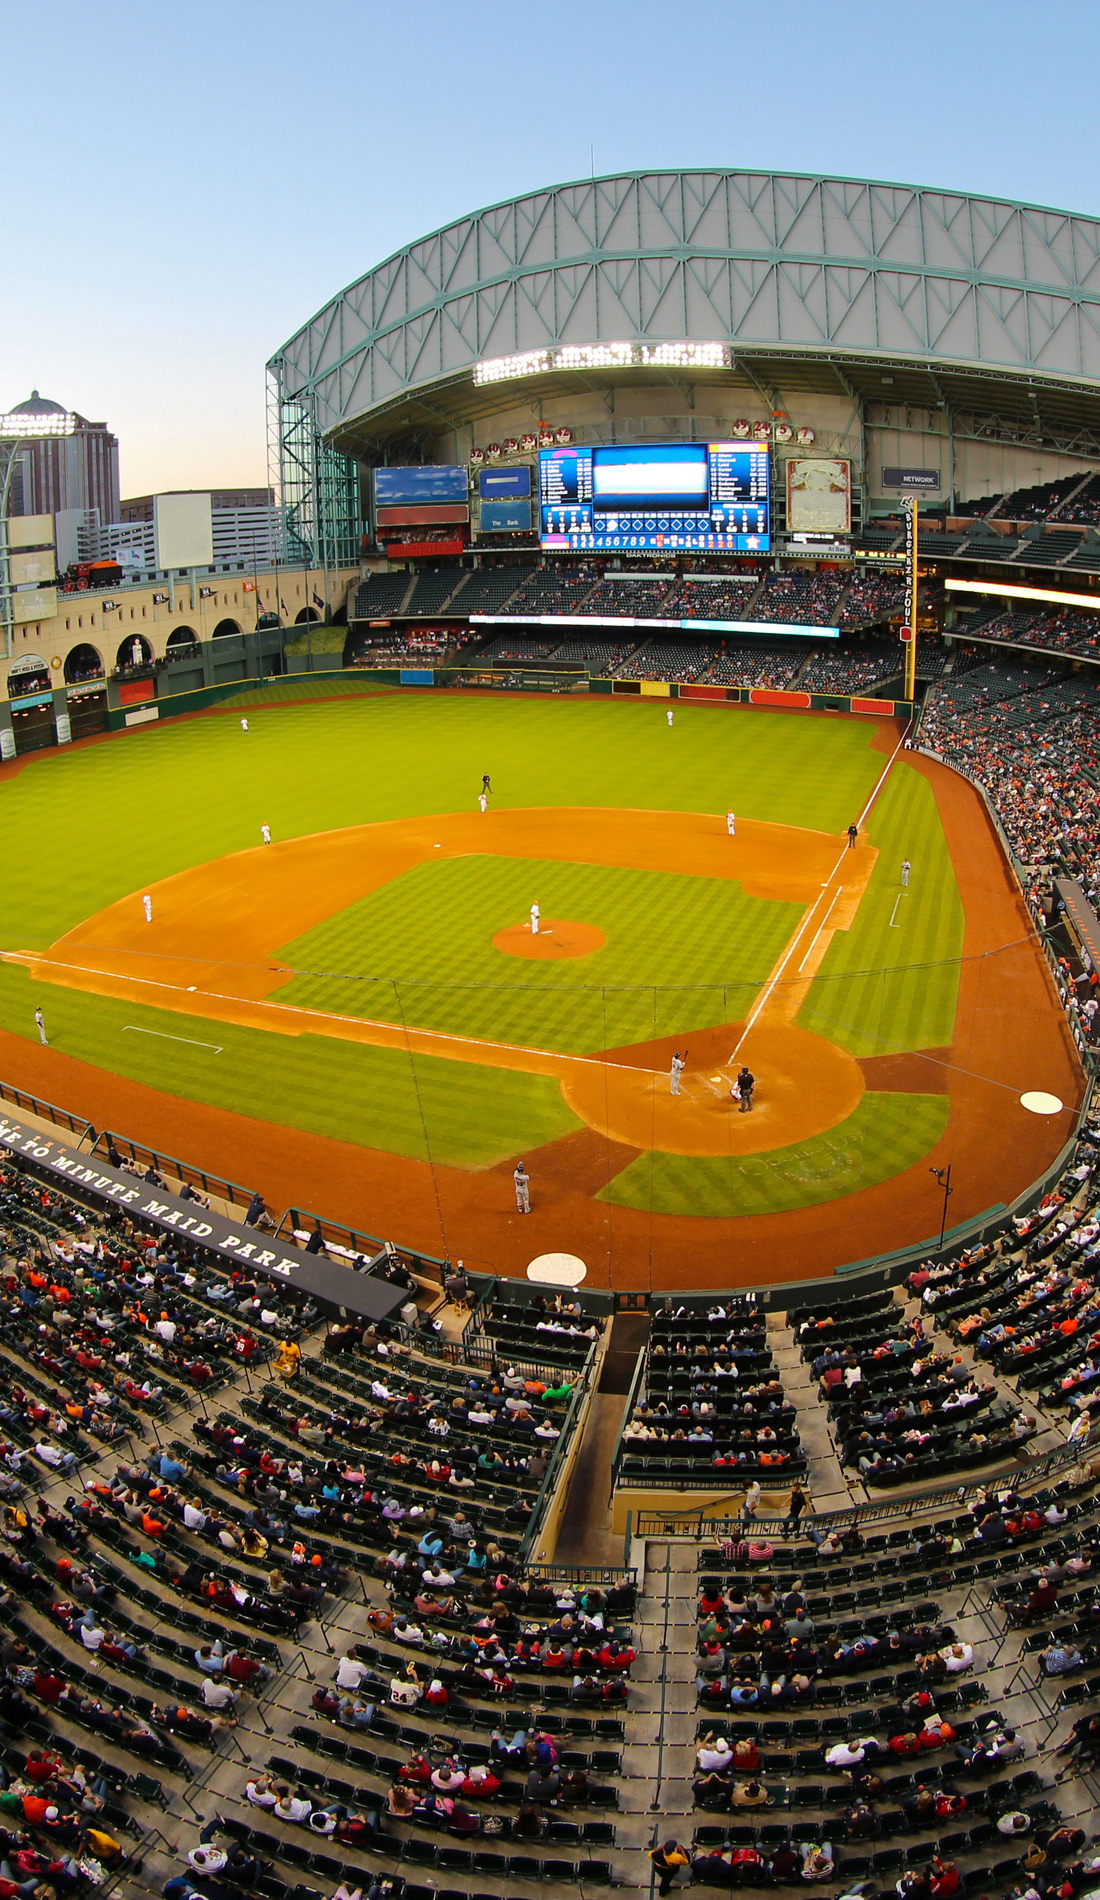 A Houston Astros live event